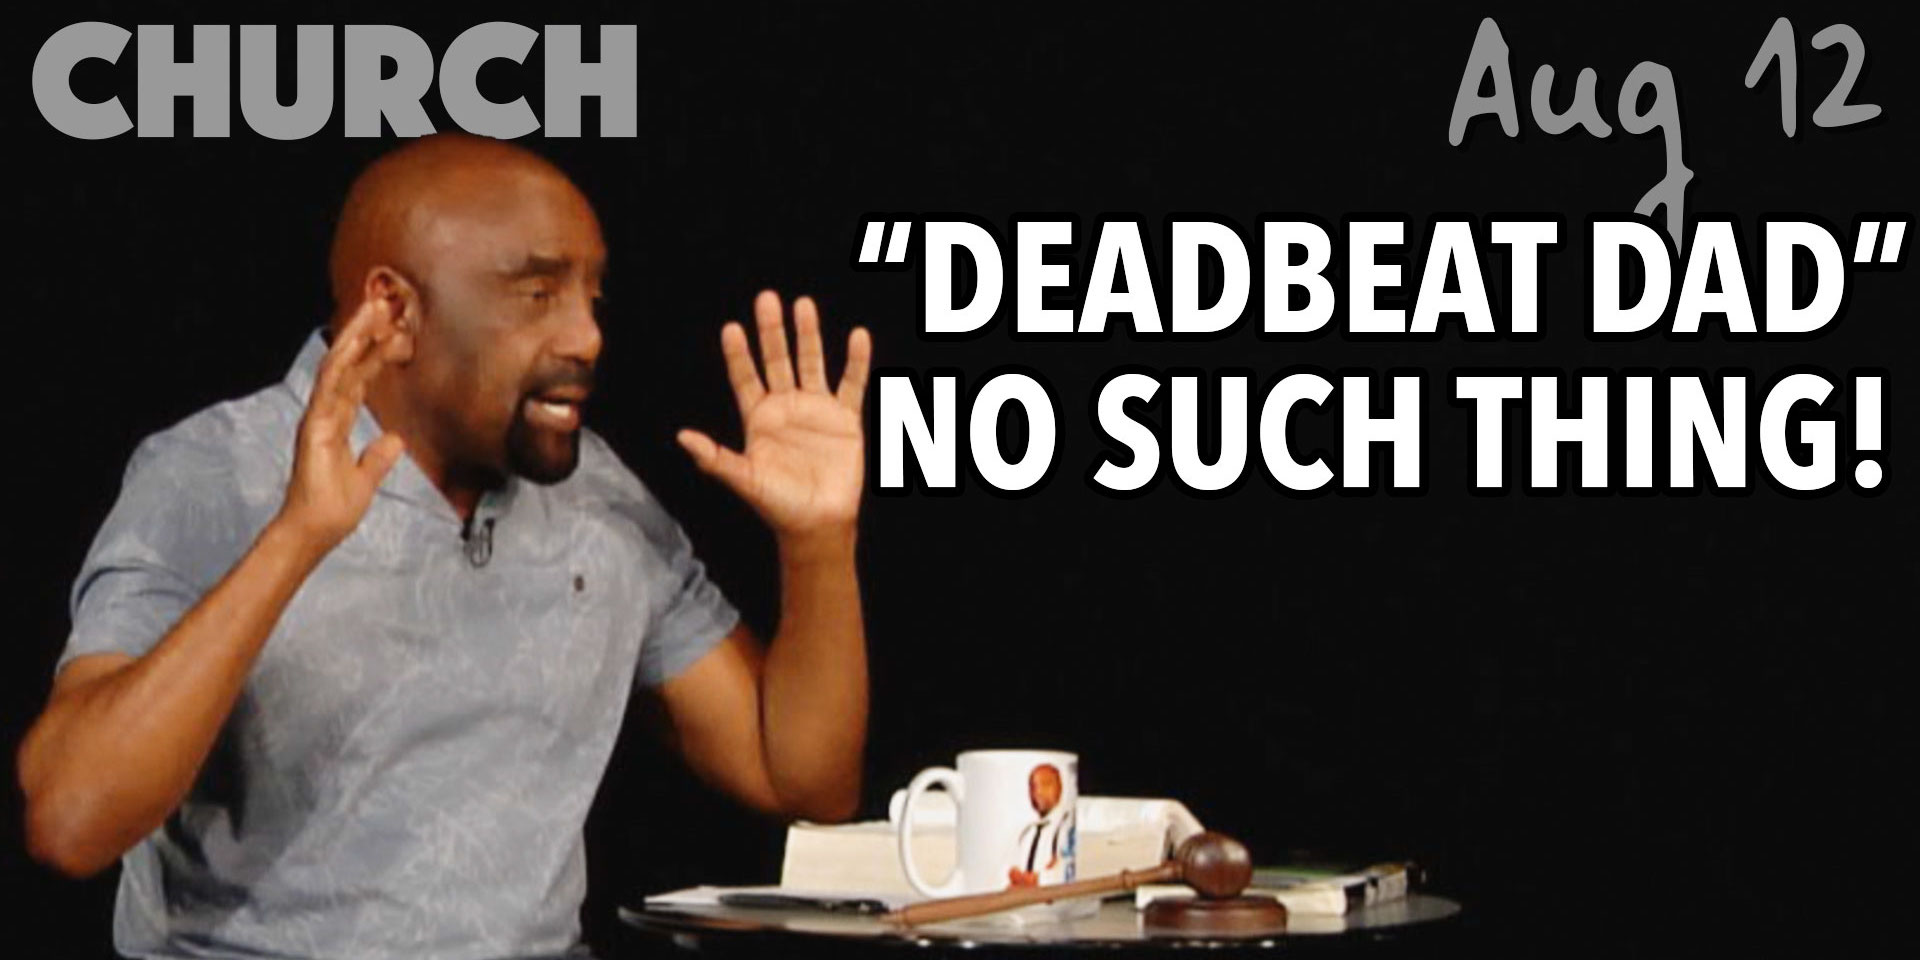 No such thing as a 'deadbeat dad' (Aug 12)